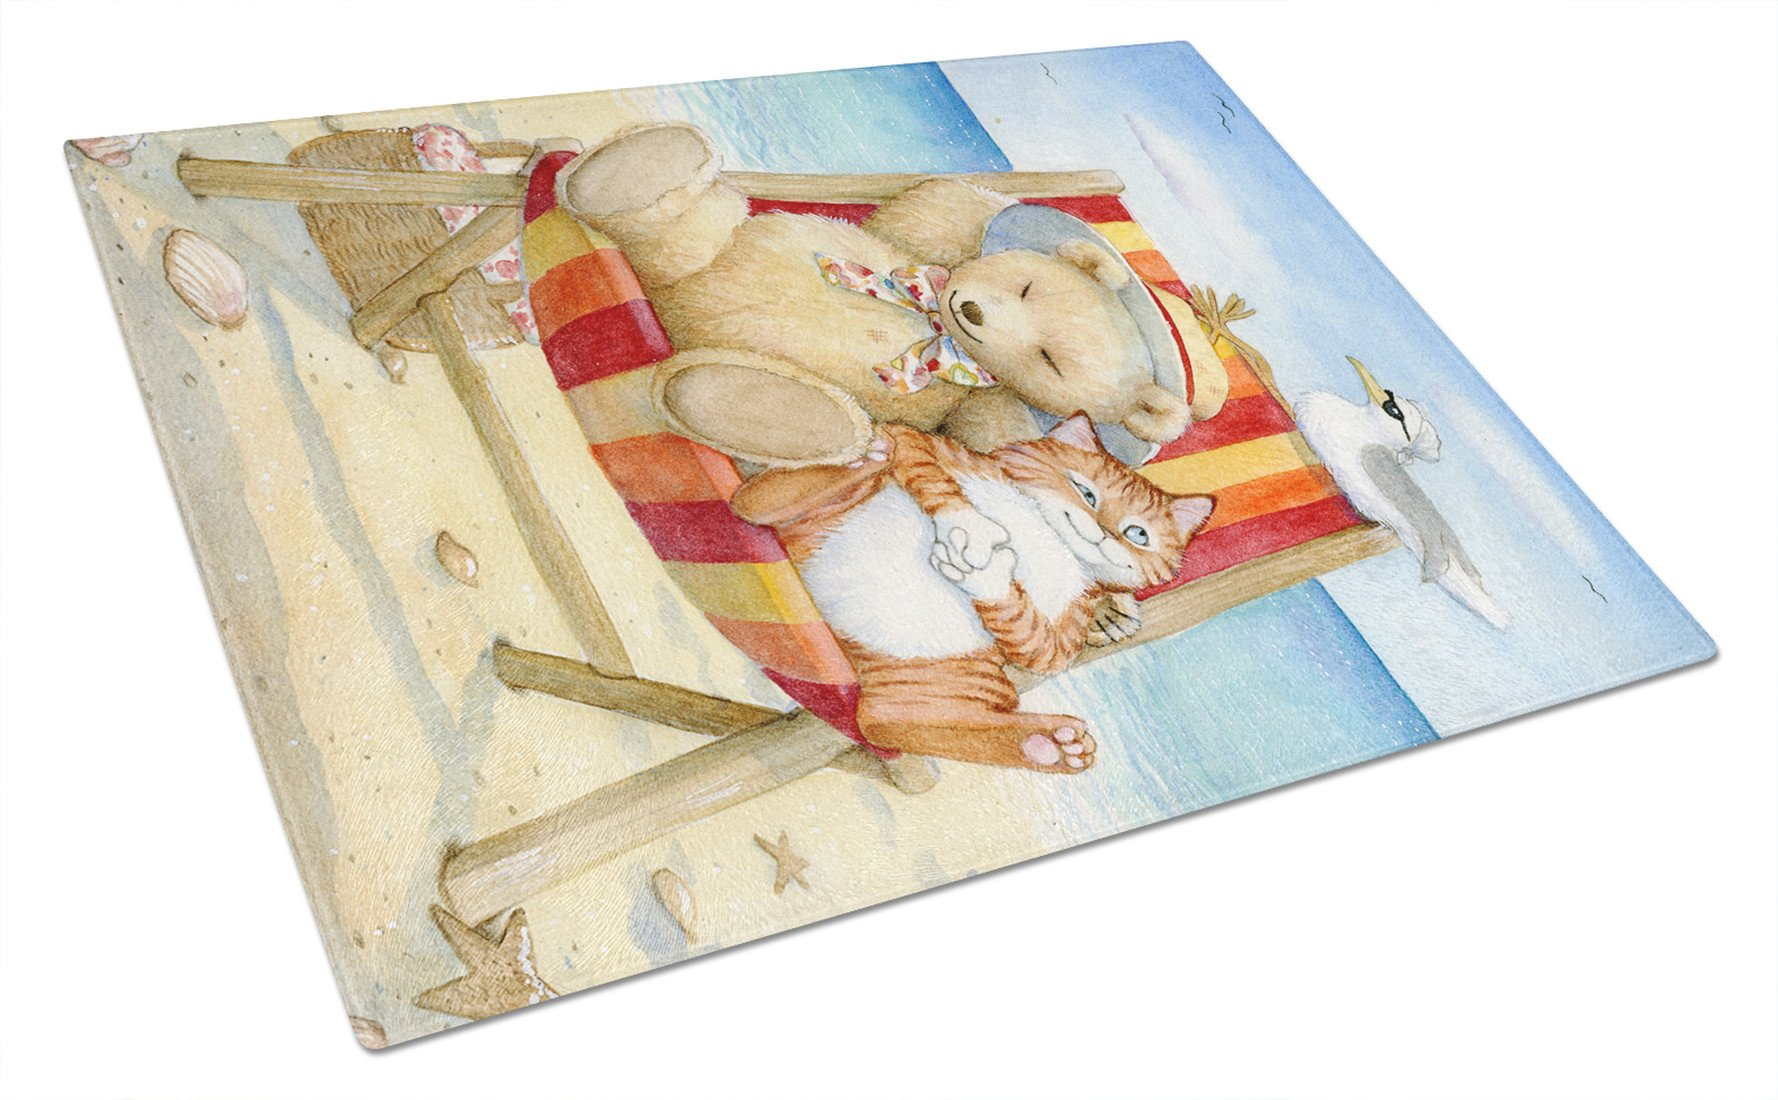 Summer Teddy Bear and Cat on Beach Glass Cutting Board Large CDCO0336LCB by Caroline's Treasures